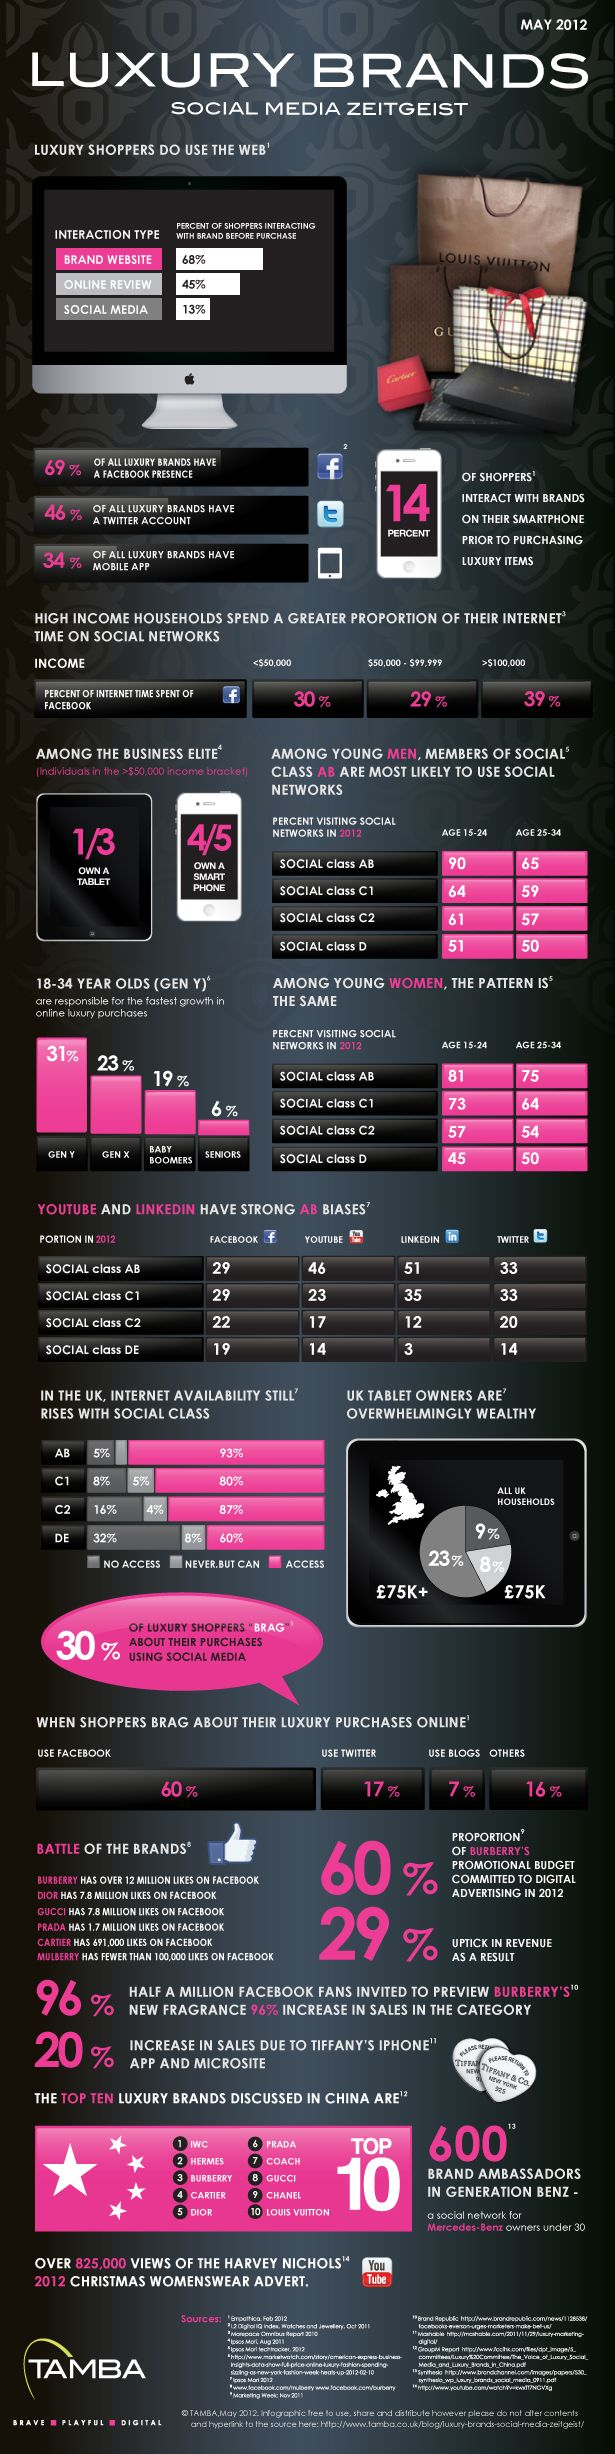 This infographic on Social Media Zeitgeist brings together research from a number of technologies sources ... and somehow illustrates a digital divide - beside the interesting facts on how luxury brands might find valuable target groups.